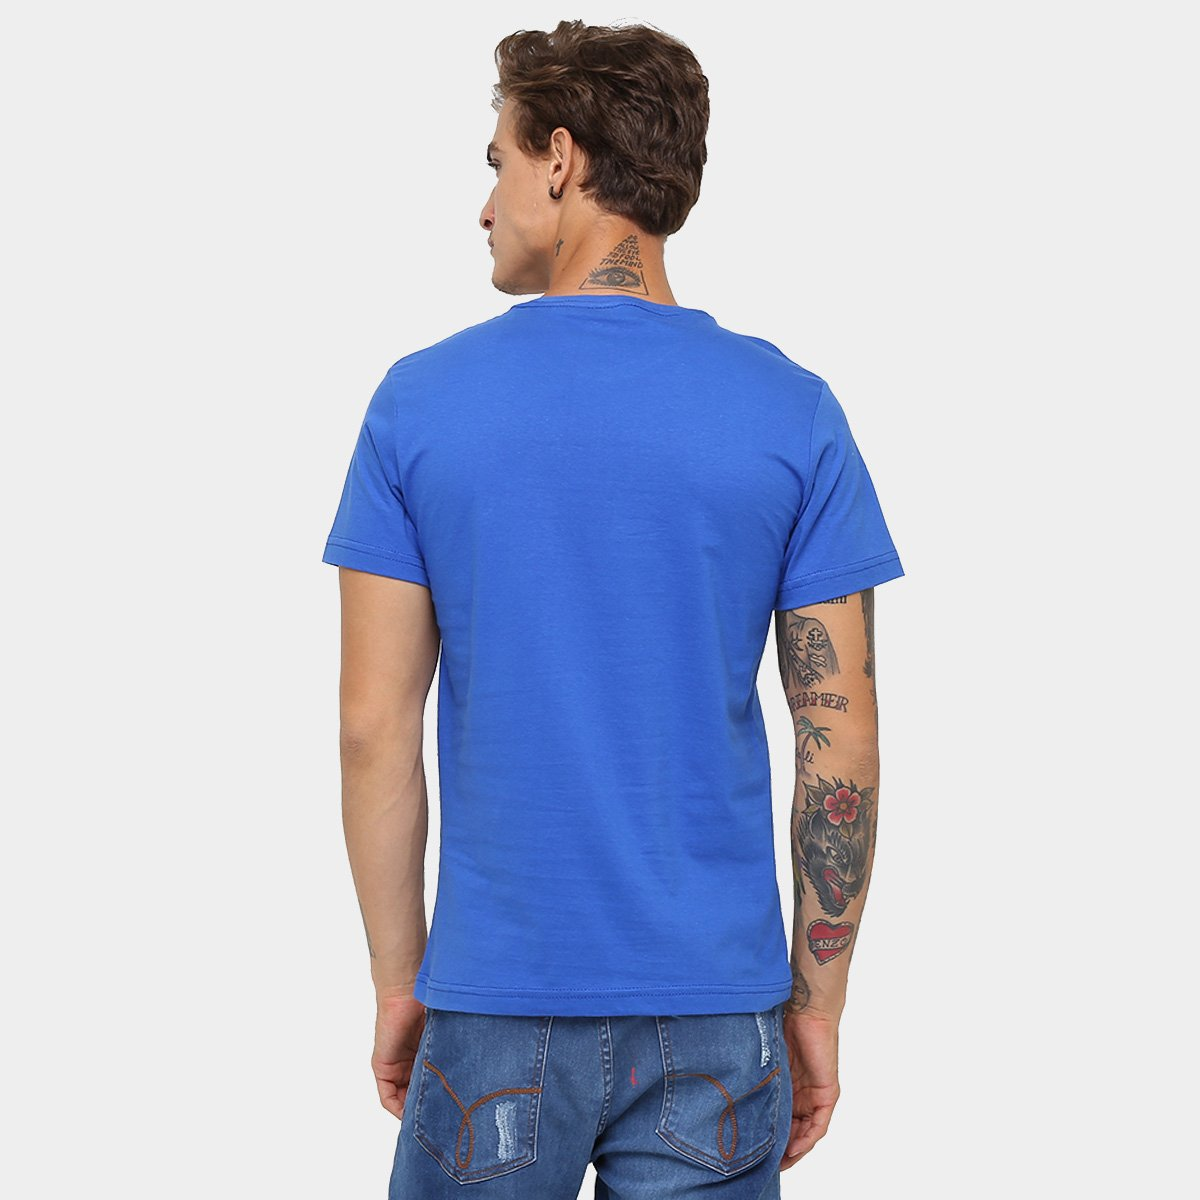 Camiseta RG 518 Básica Bordado - Azul Royal